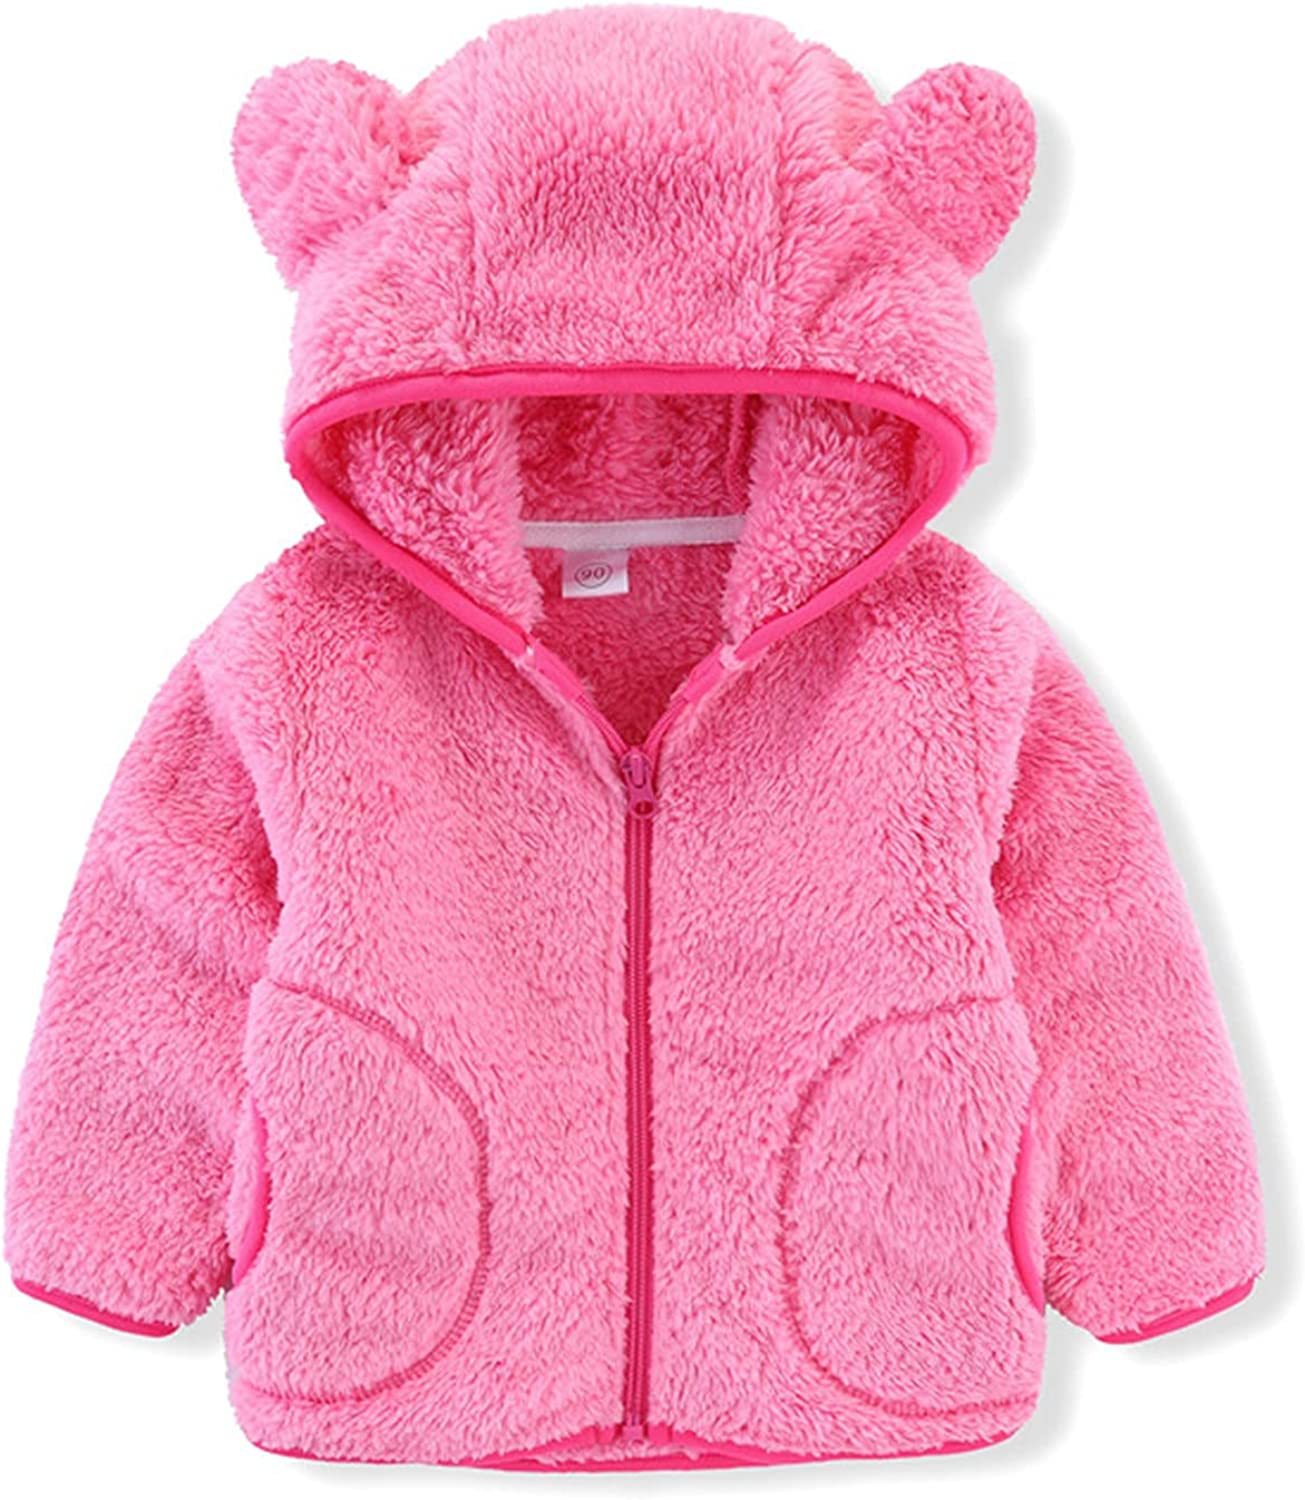 Ranking TOP13 YOYO.RI Infant Toddler Fleece Hooded Coat - with Directly managed store Bab Pocket Kids